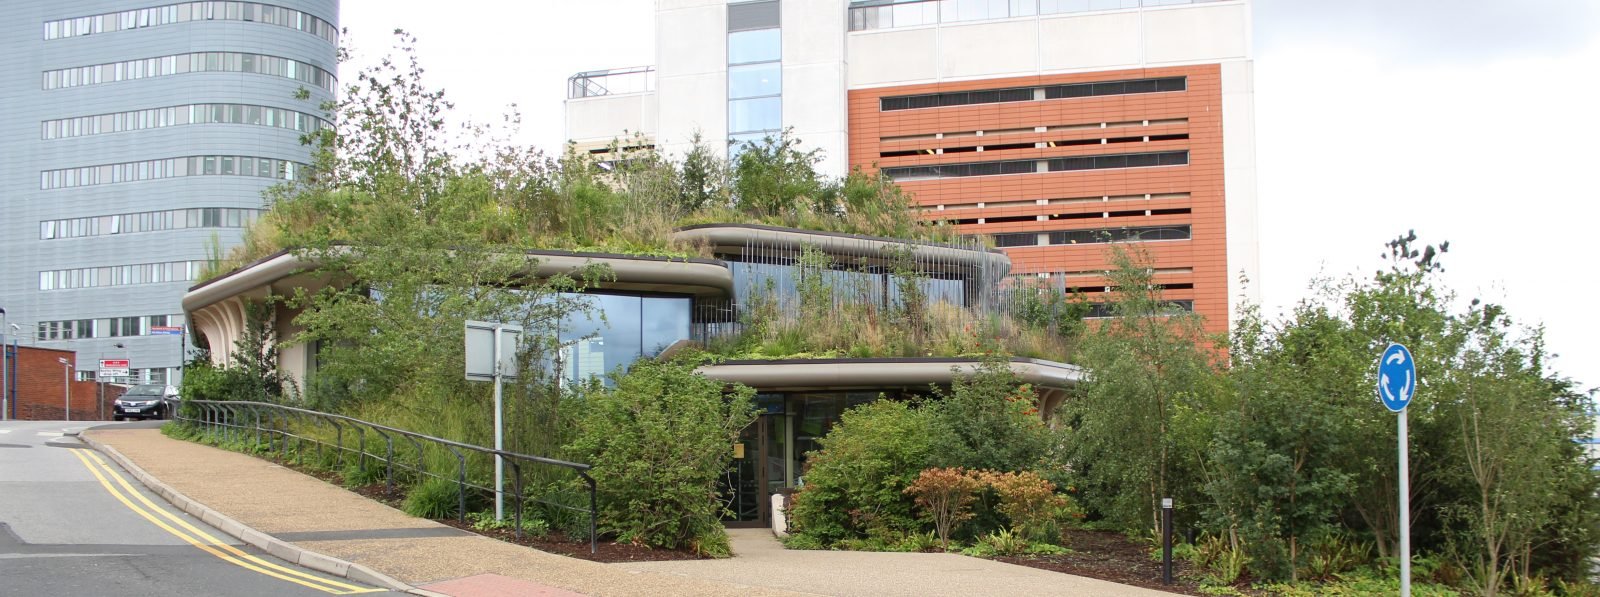 rooftop garden of the Maggie's Centre Cancer Charity